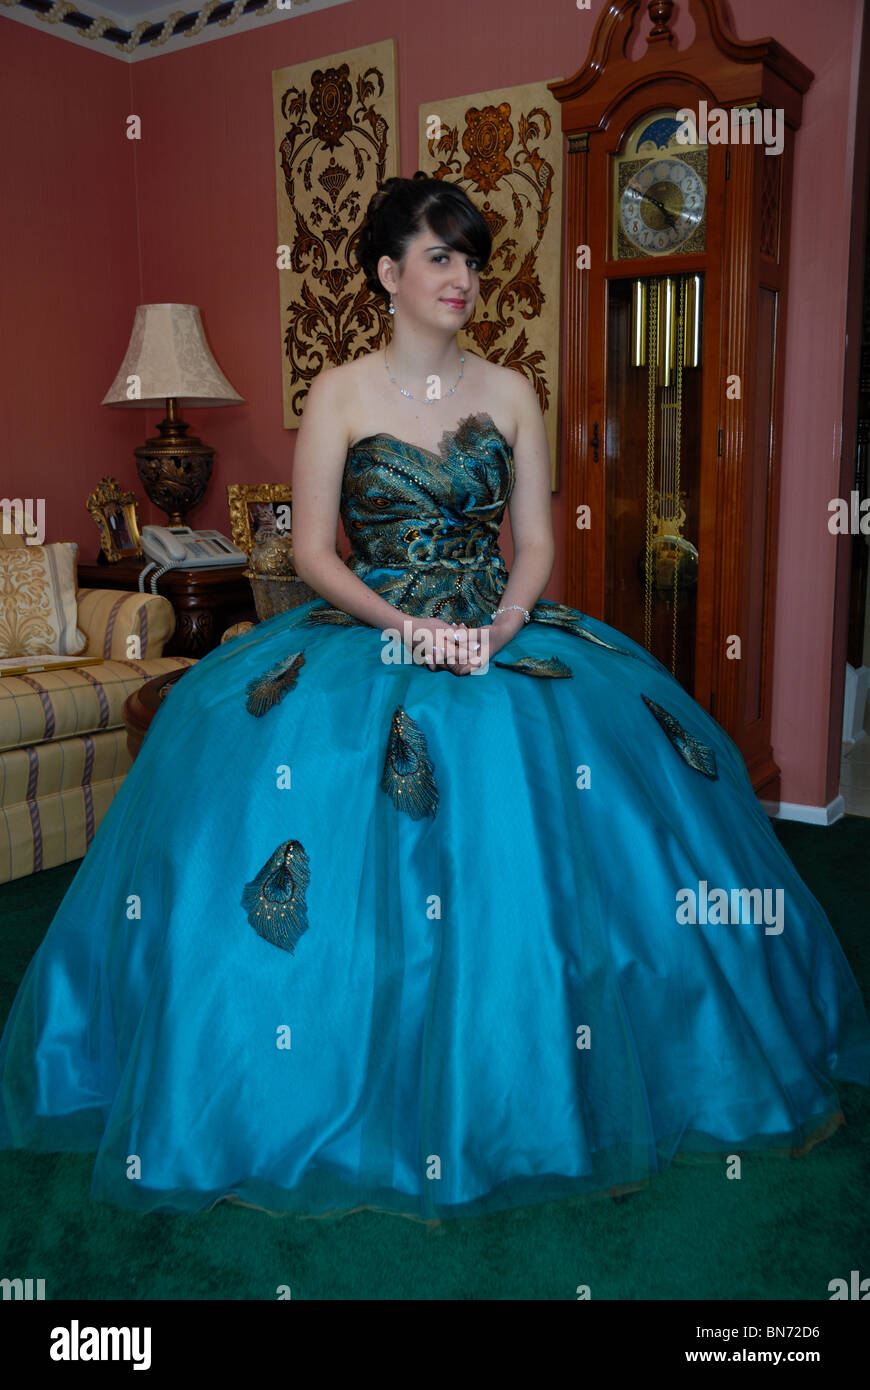 Peacock Dress Stockfotos & Peacock Dress Bilder - Alamy